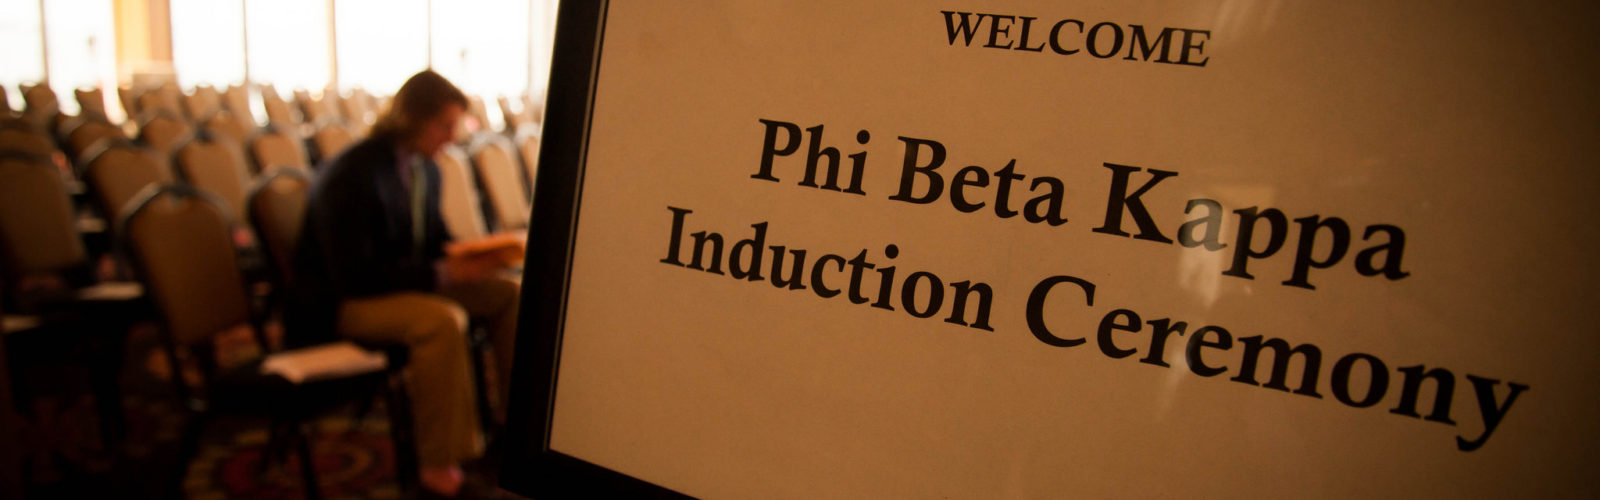 "A sign says ""Phi Beta Kappa Induction Ceremony."""